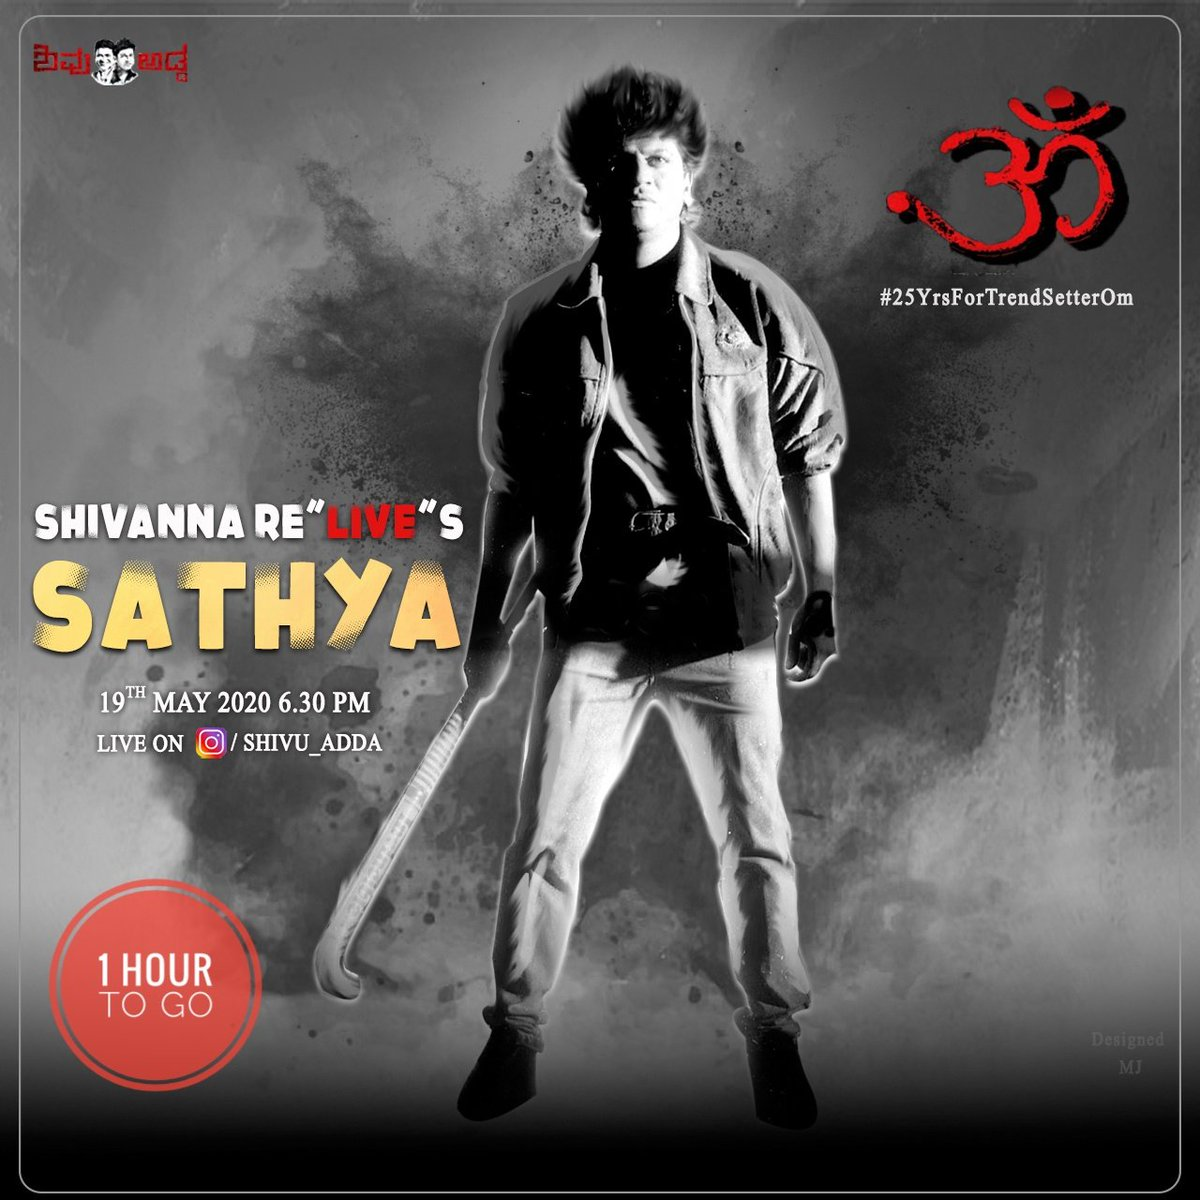 One hour to go 🤩🔥 Boss will be live with us 6:30 PM on instagram handle  @NimmaShivanna  @nimmaupendra    #25YrsForTrendsrtterOm   #shivuaDDa